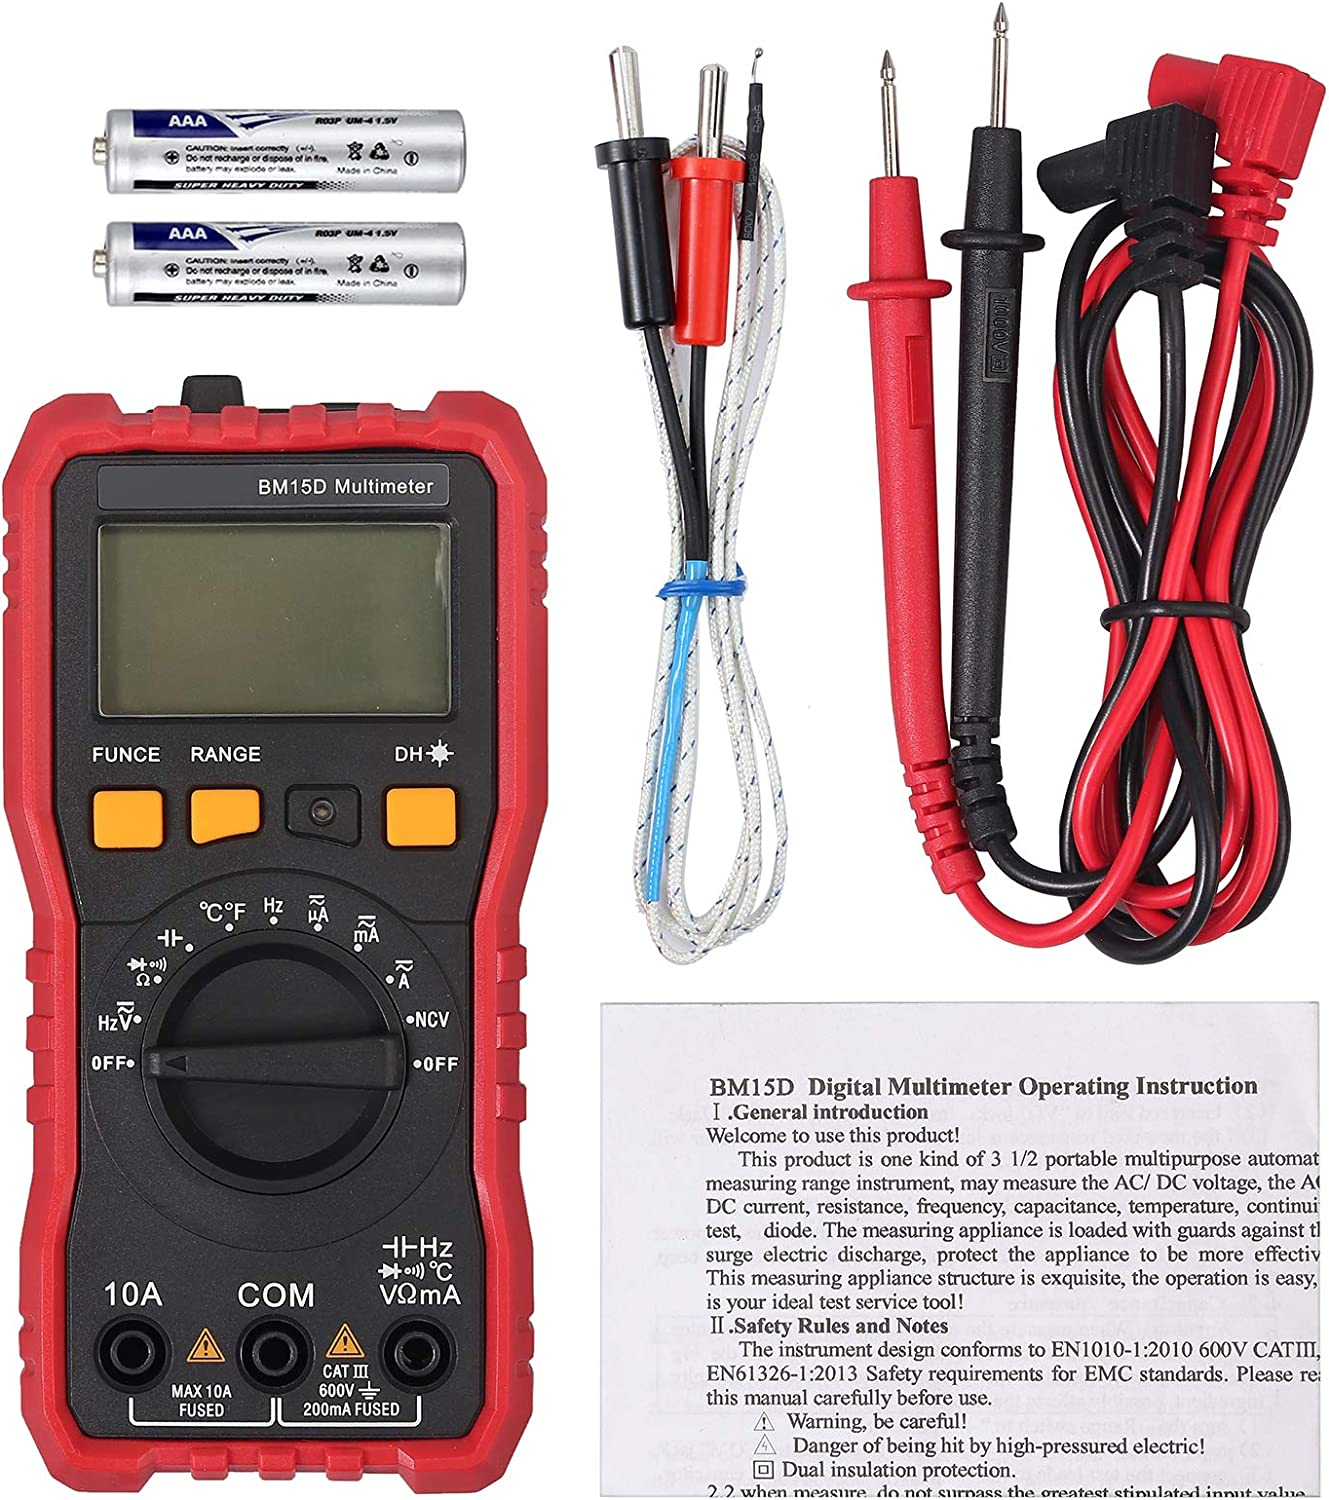 Neoteck Digital Multimeter 2000 Counts TRMS NCV ACVHz AC DC Current Voltage Capacitance Hz Temperature Diode Continuity with 2 Probe Holders And Flash Light